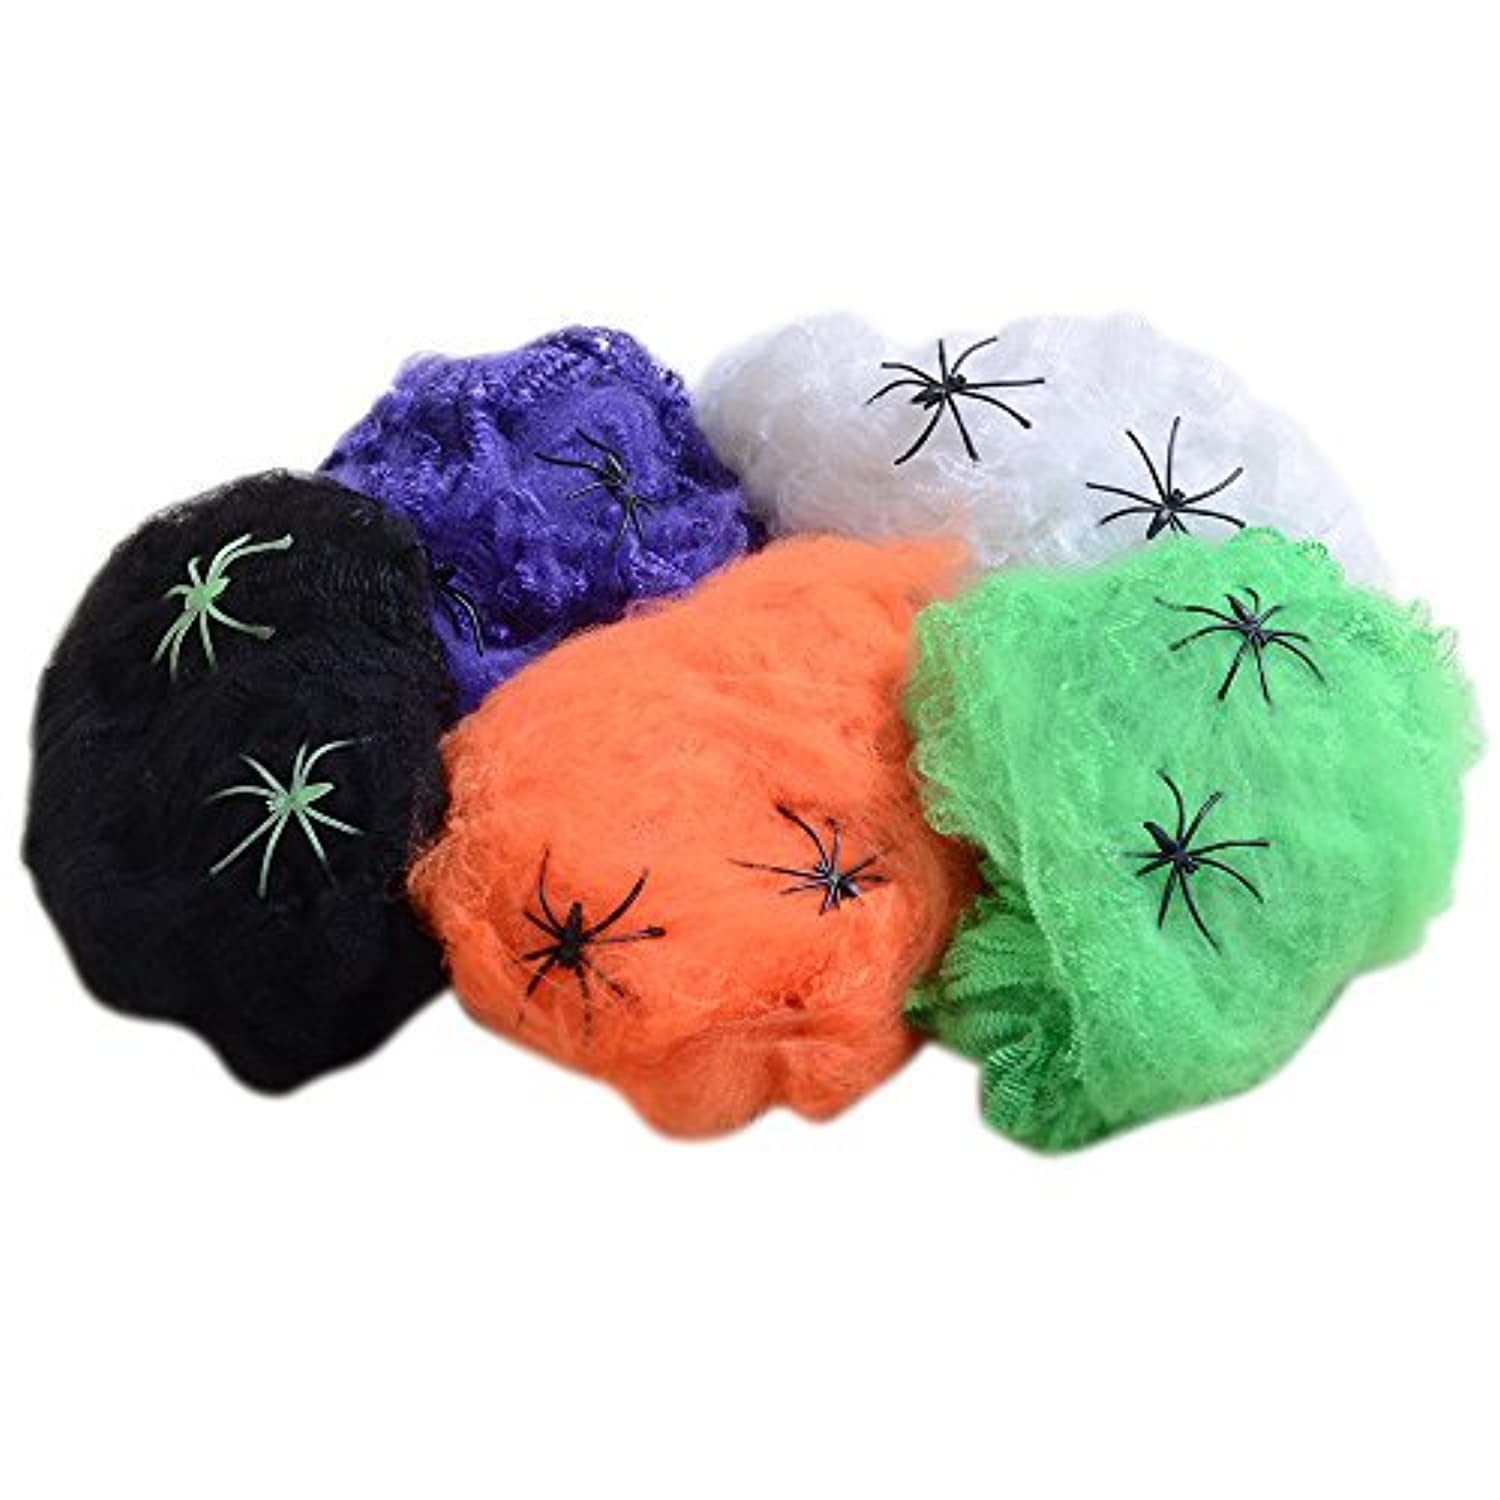 QBSM Halloween 5 PCS Multi-Colored Spider Webs Spiderwebs Cobweb With Plastic Spiders Party Home Garden Yard Decoration [並行輸入品]